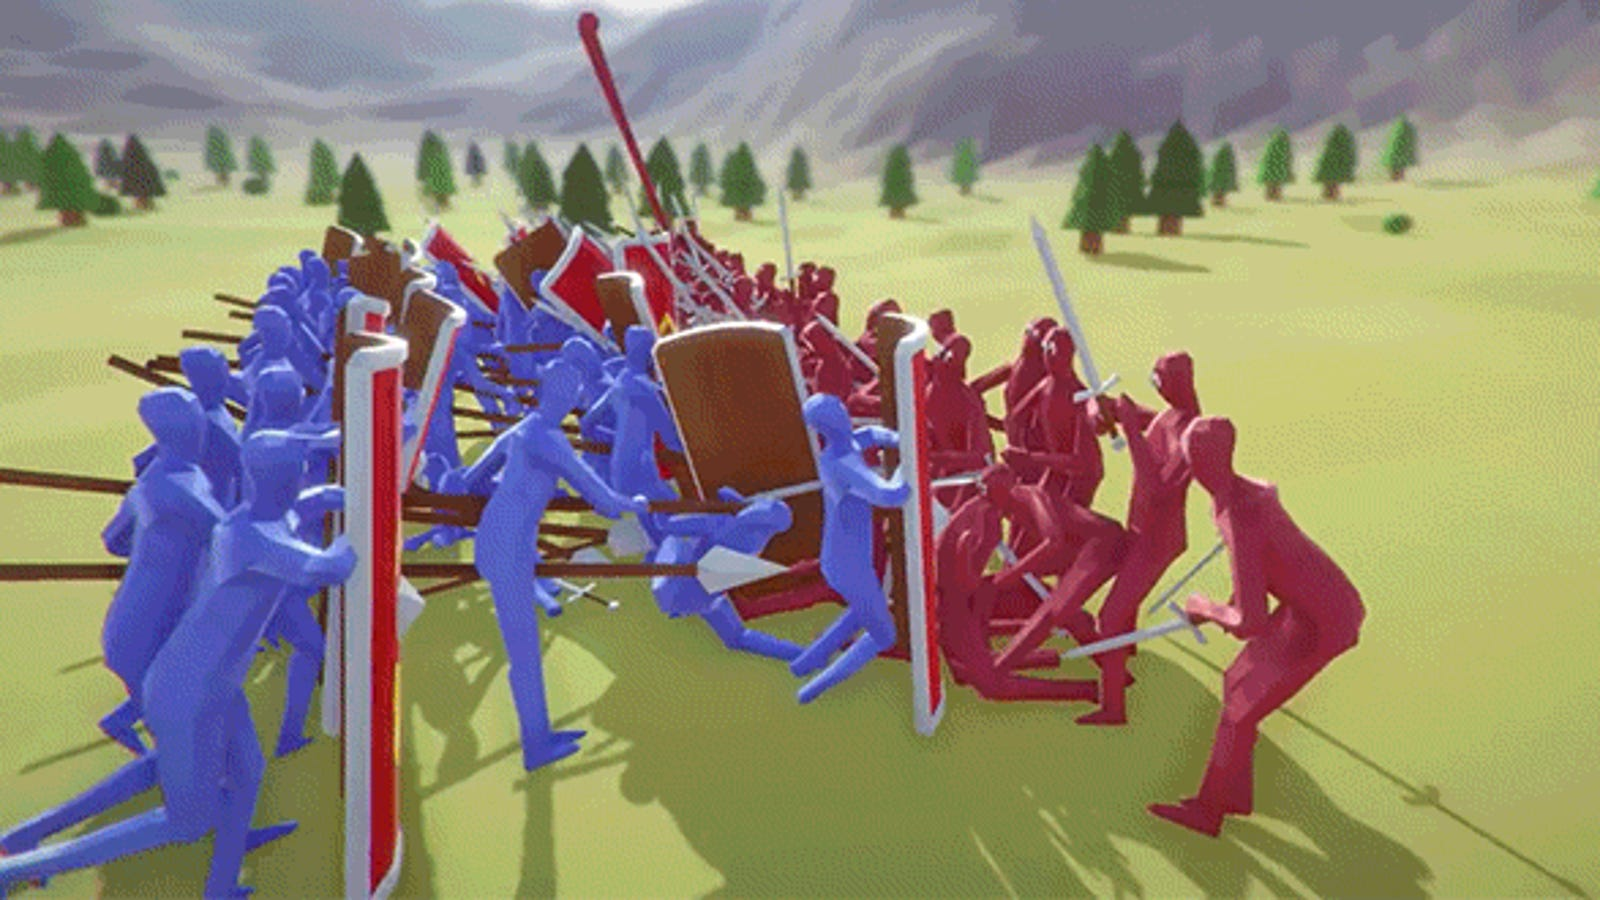 This Totally Accurate Battle Simulator Might Be the Most Ridiculous Video Game Ever